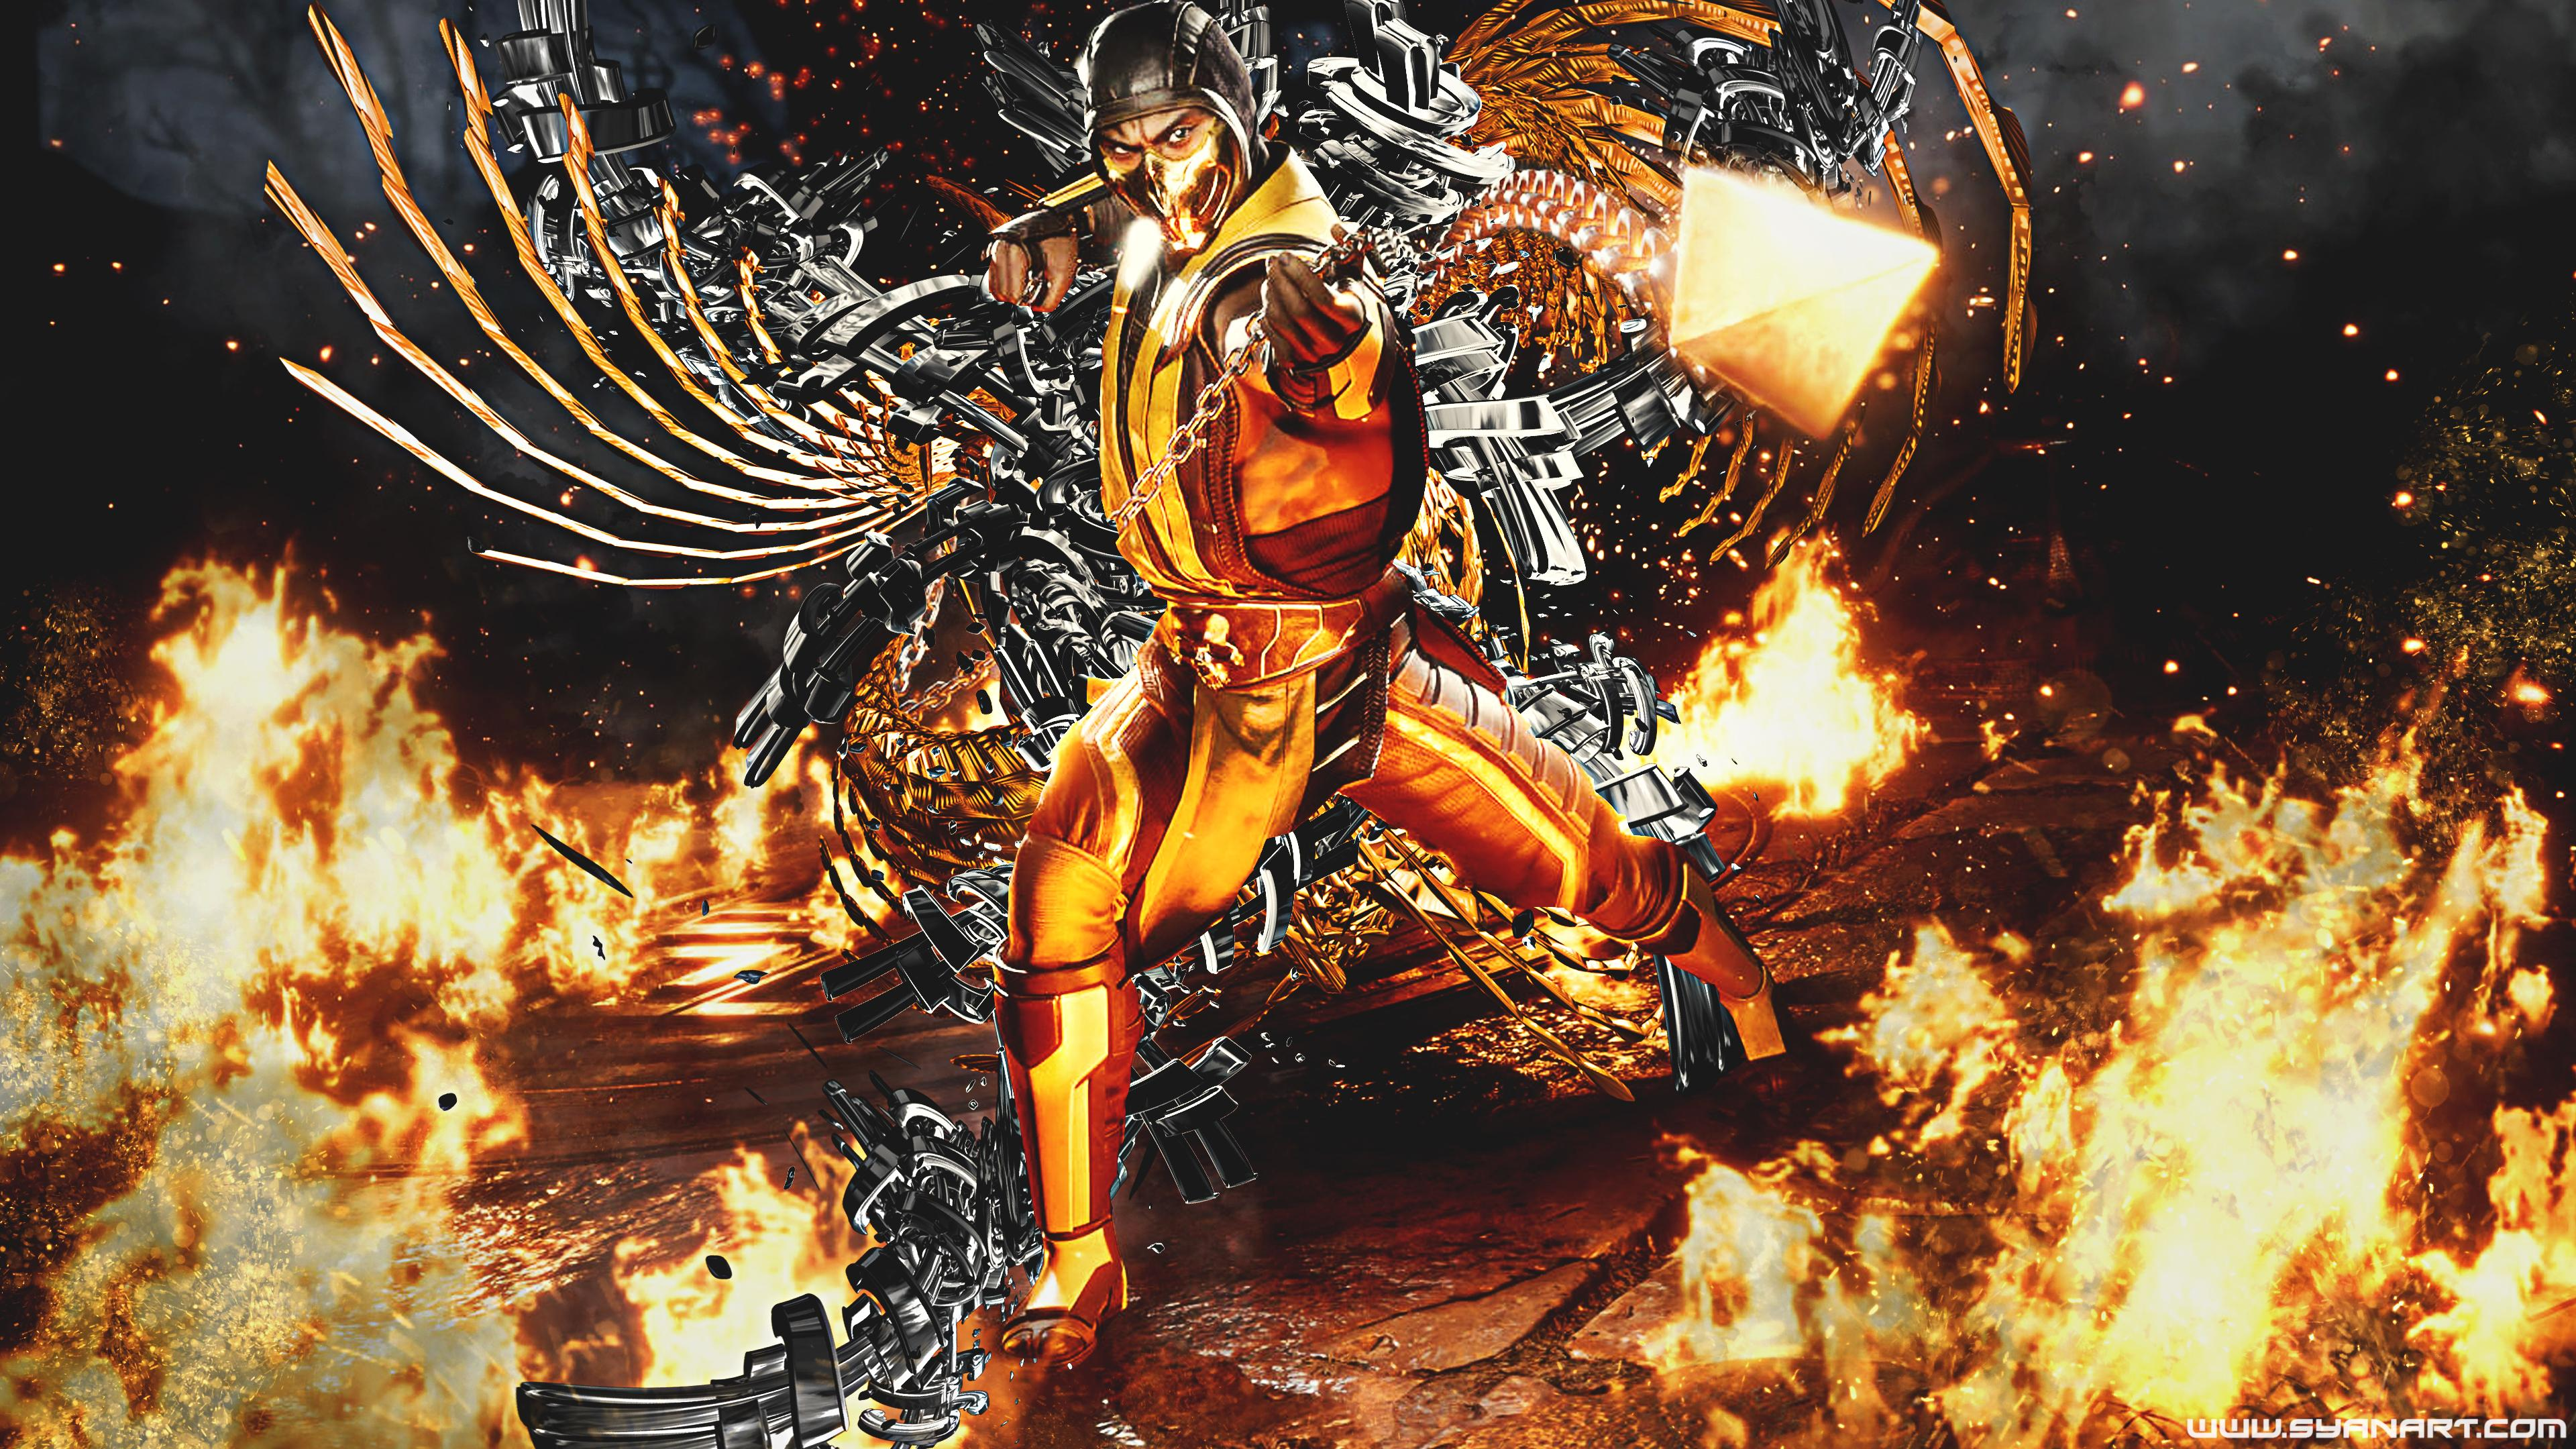 Scorpion Mk11 Wallpapers Wallpaper Cave